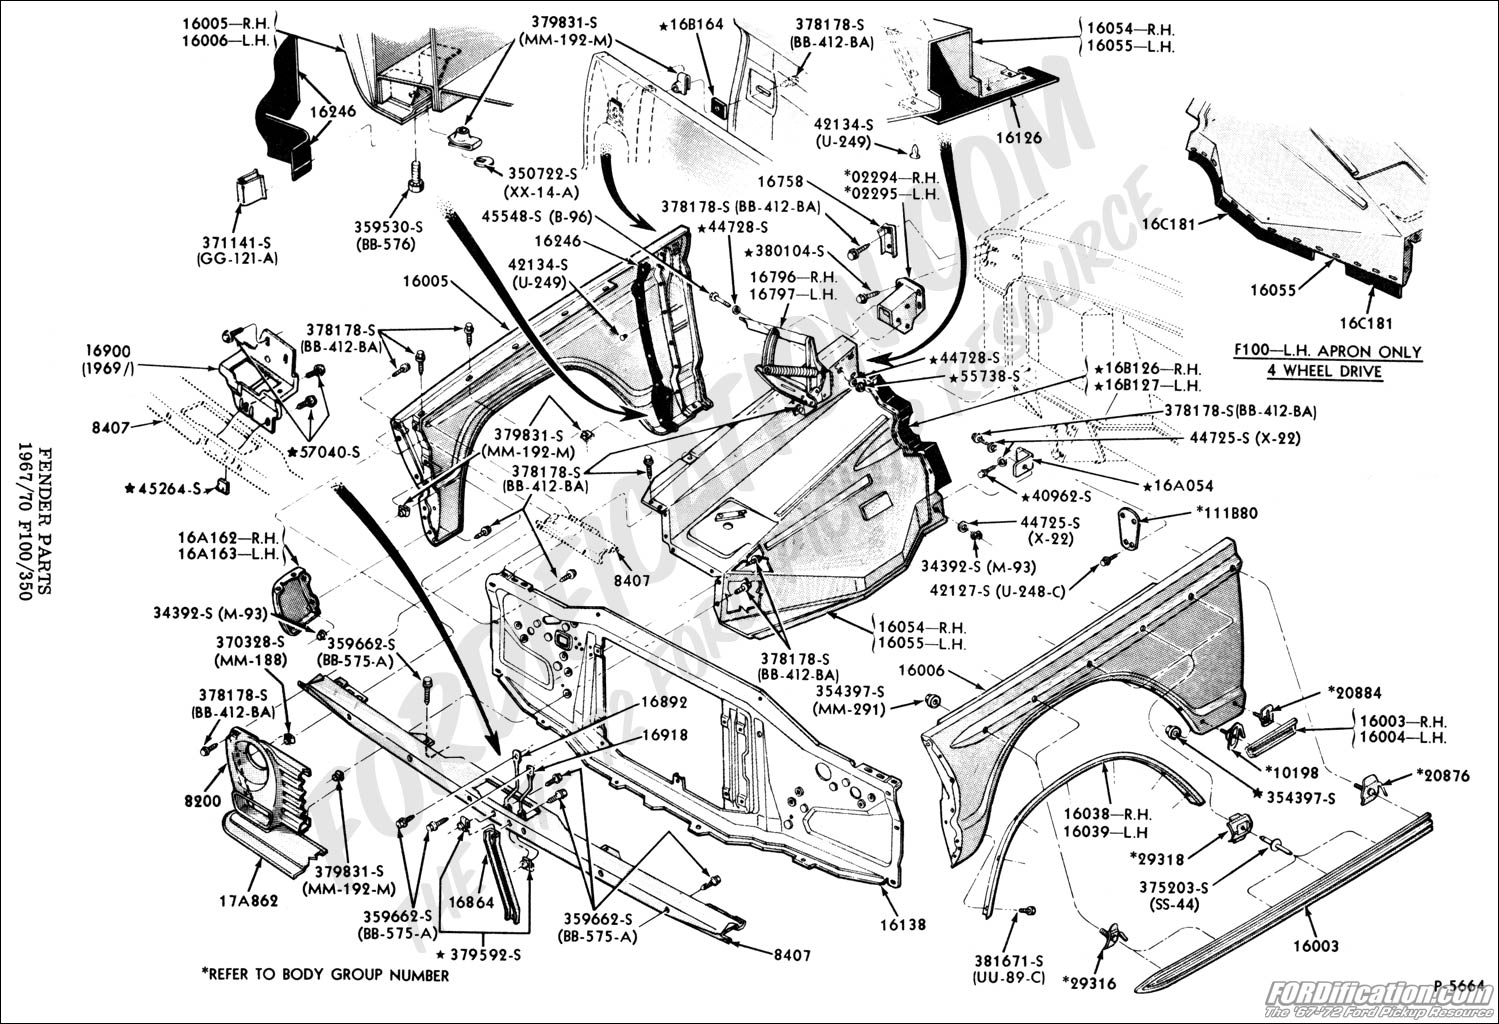 1966 chevy truck ignition switch wiring diagram 95 buick park avenue fuel pump relay location